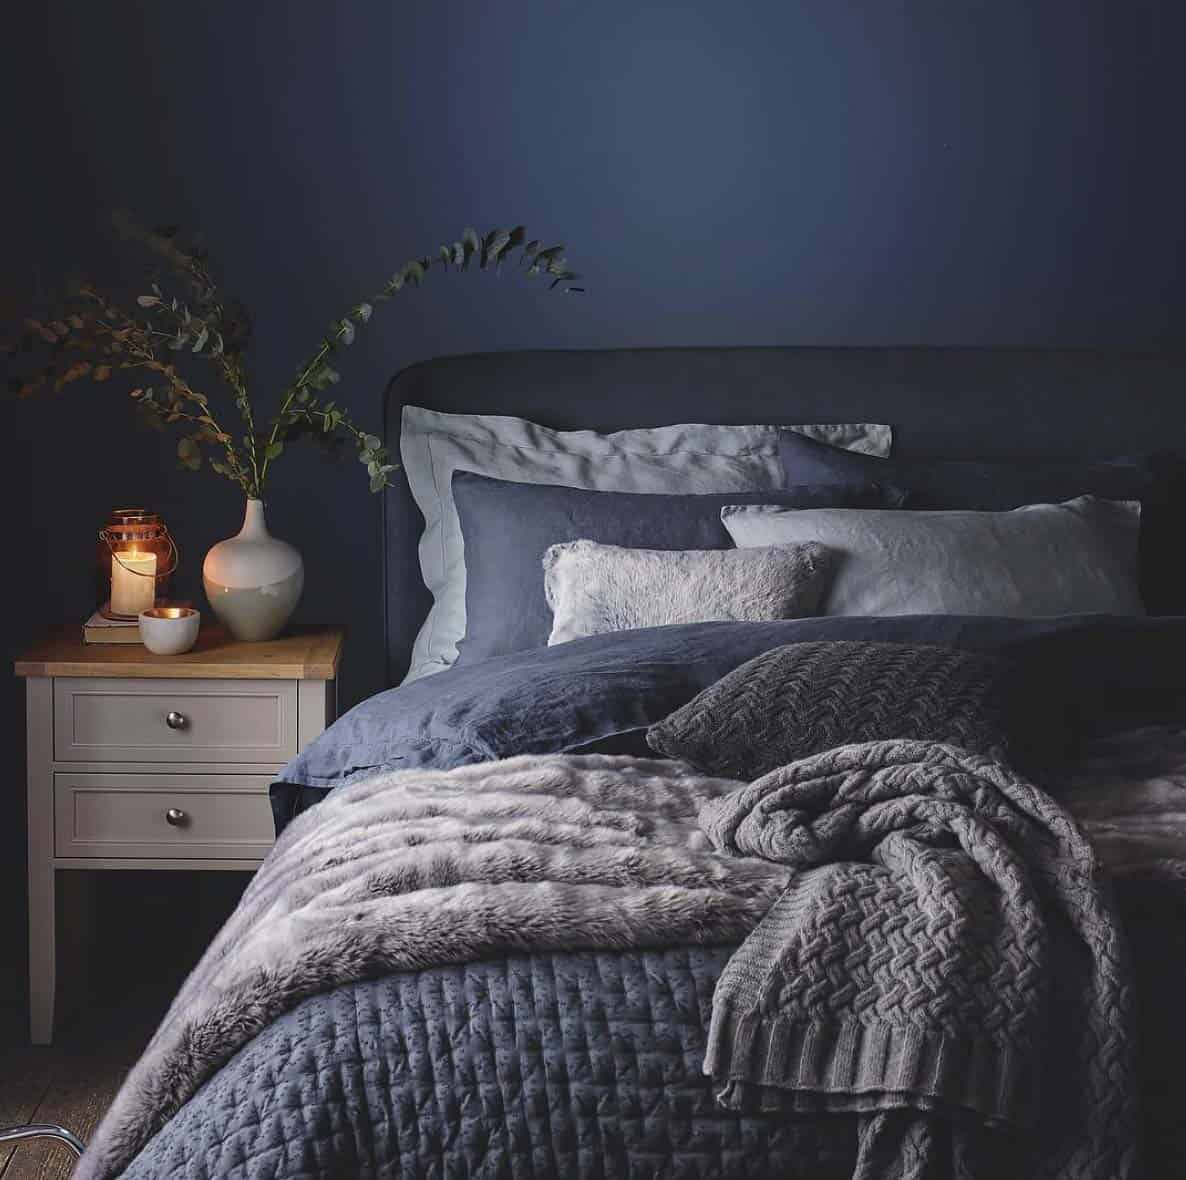 33 Ultra Cozy Bedroom Decorating Ideas For Winter Warmth